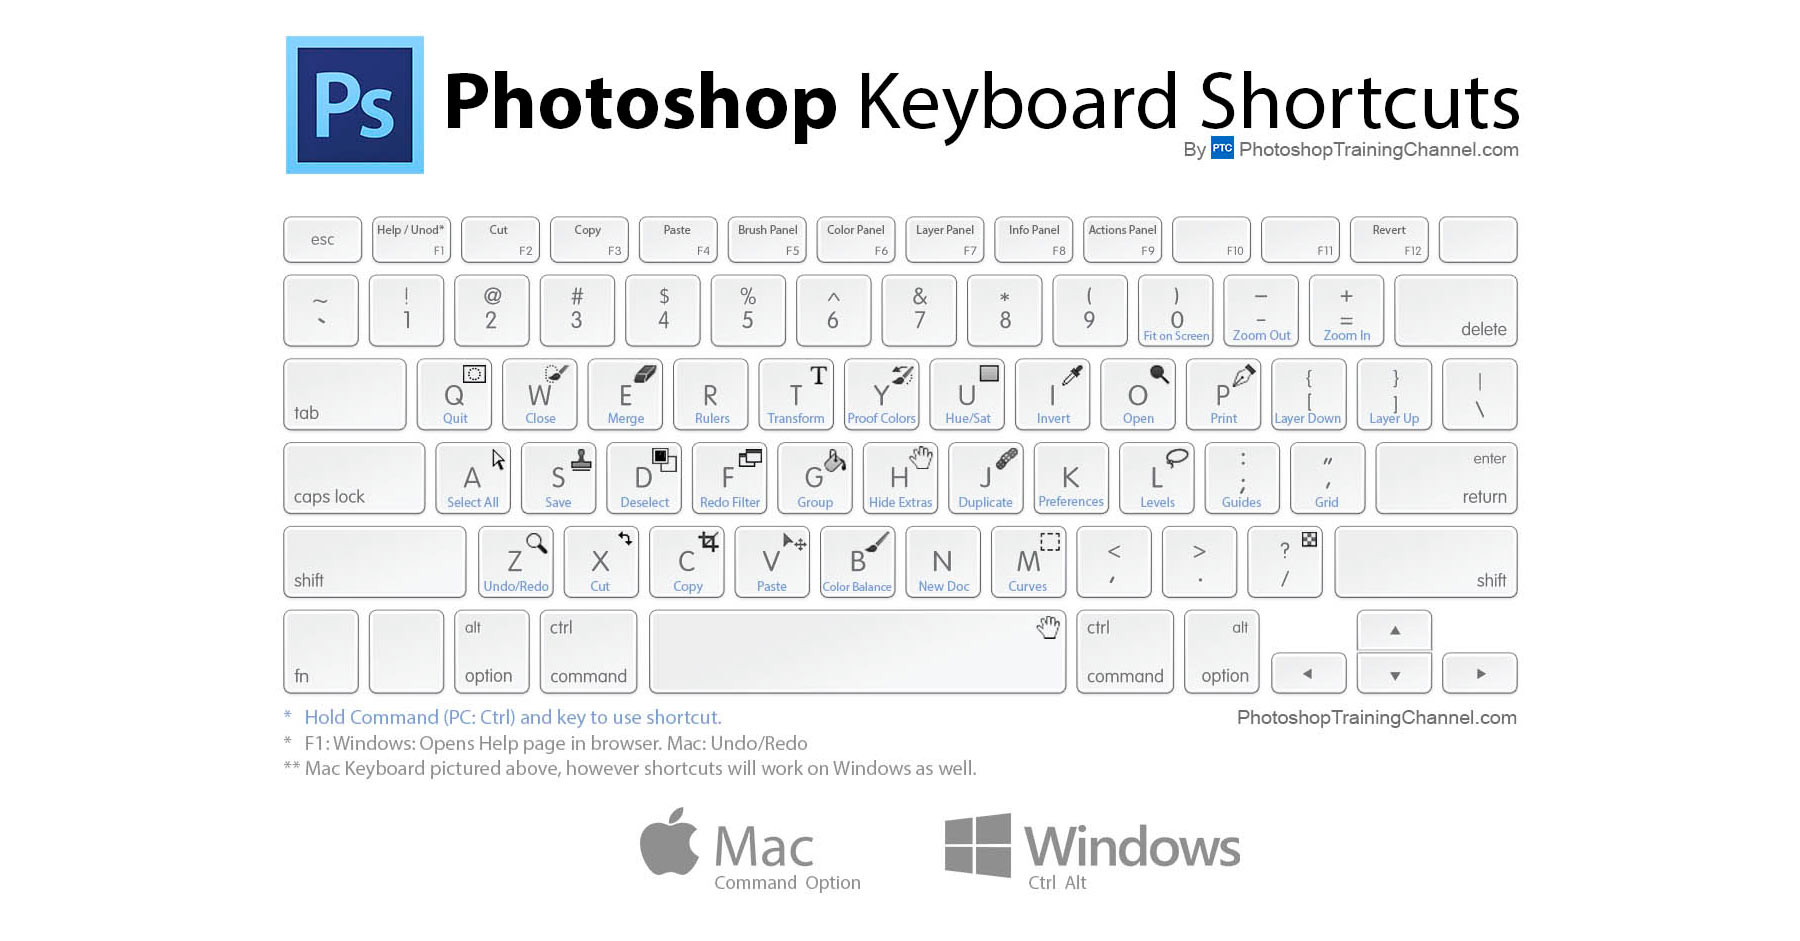 Appealing Photoshop Cc 2017 Photoshop Keyboard Shortcuts Cheat Sheet Copyright Symbol Brush Photoshop Download Copyright Symbol dpreview Copyright Symbol Photoshop